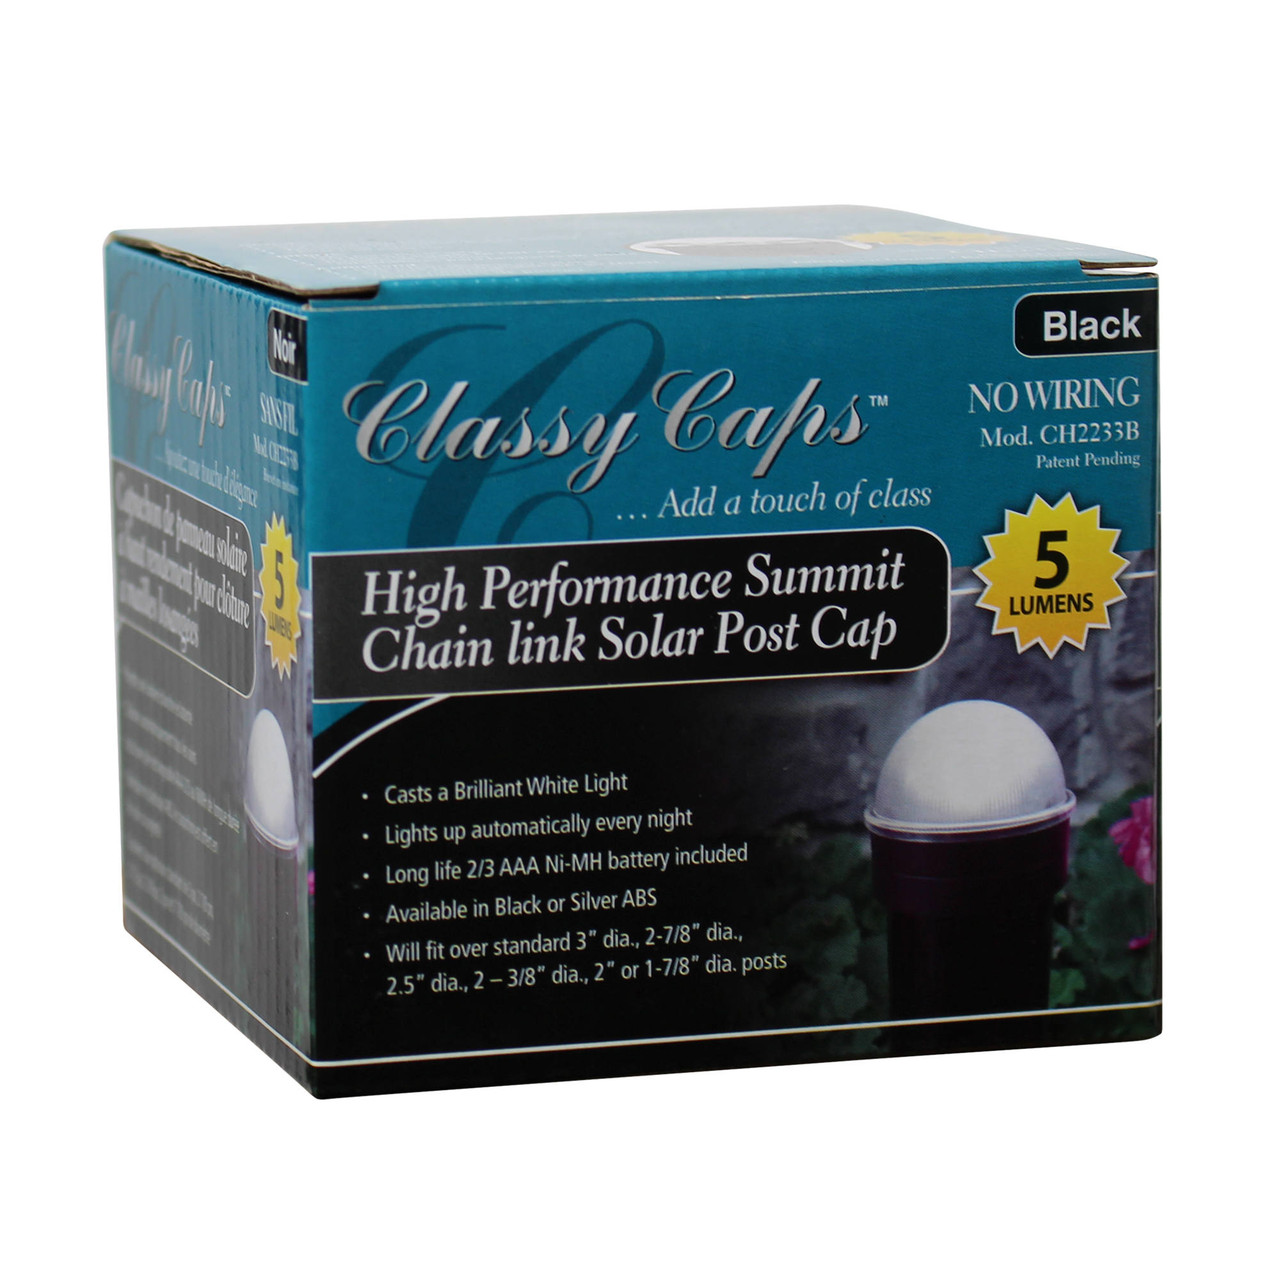 Classy Caps Summit Solar Post Cap in Box